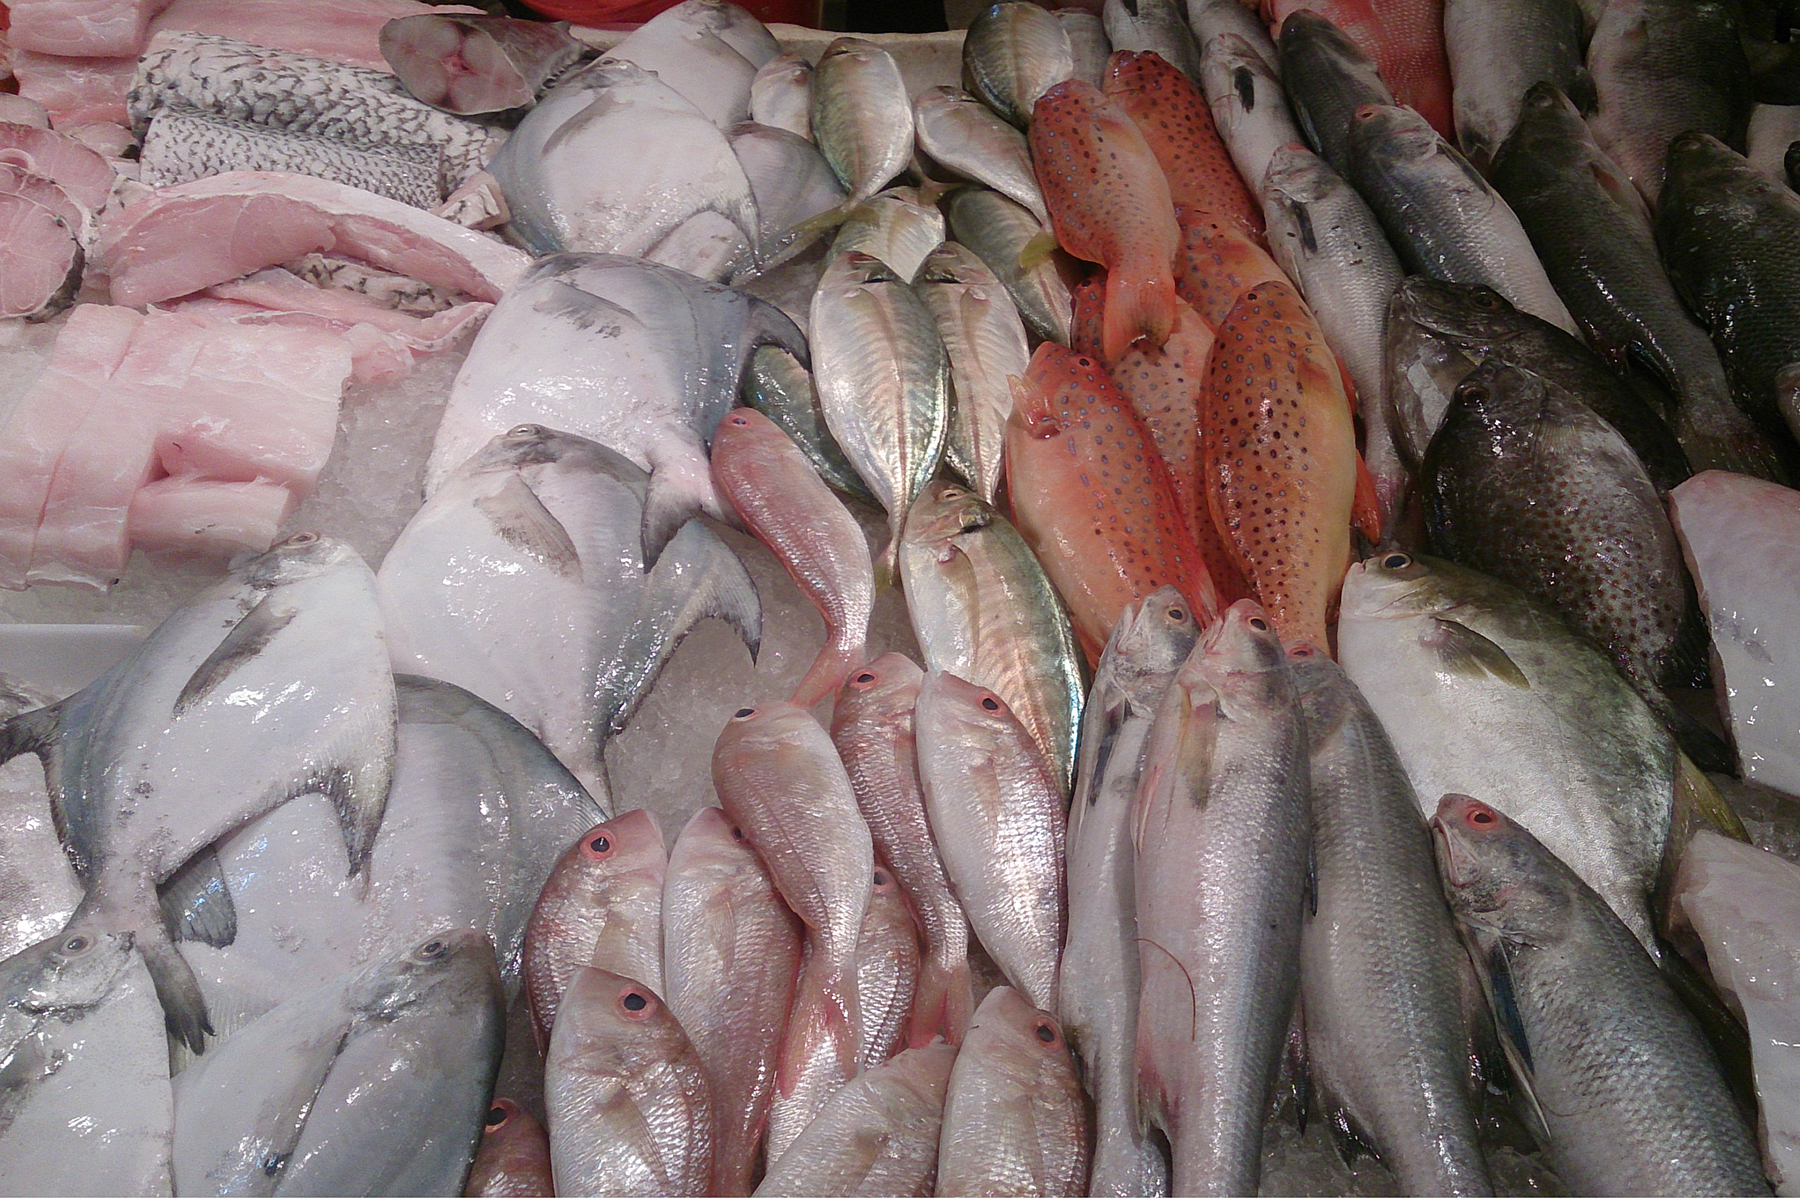 Mercury in fish scientists study asians for health risks for What fish is high in mercury